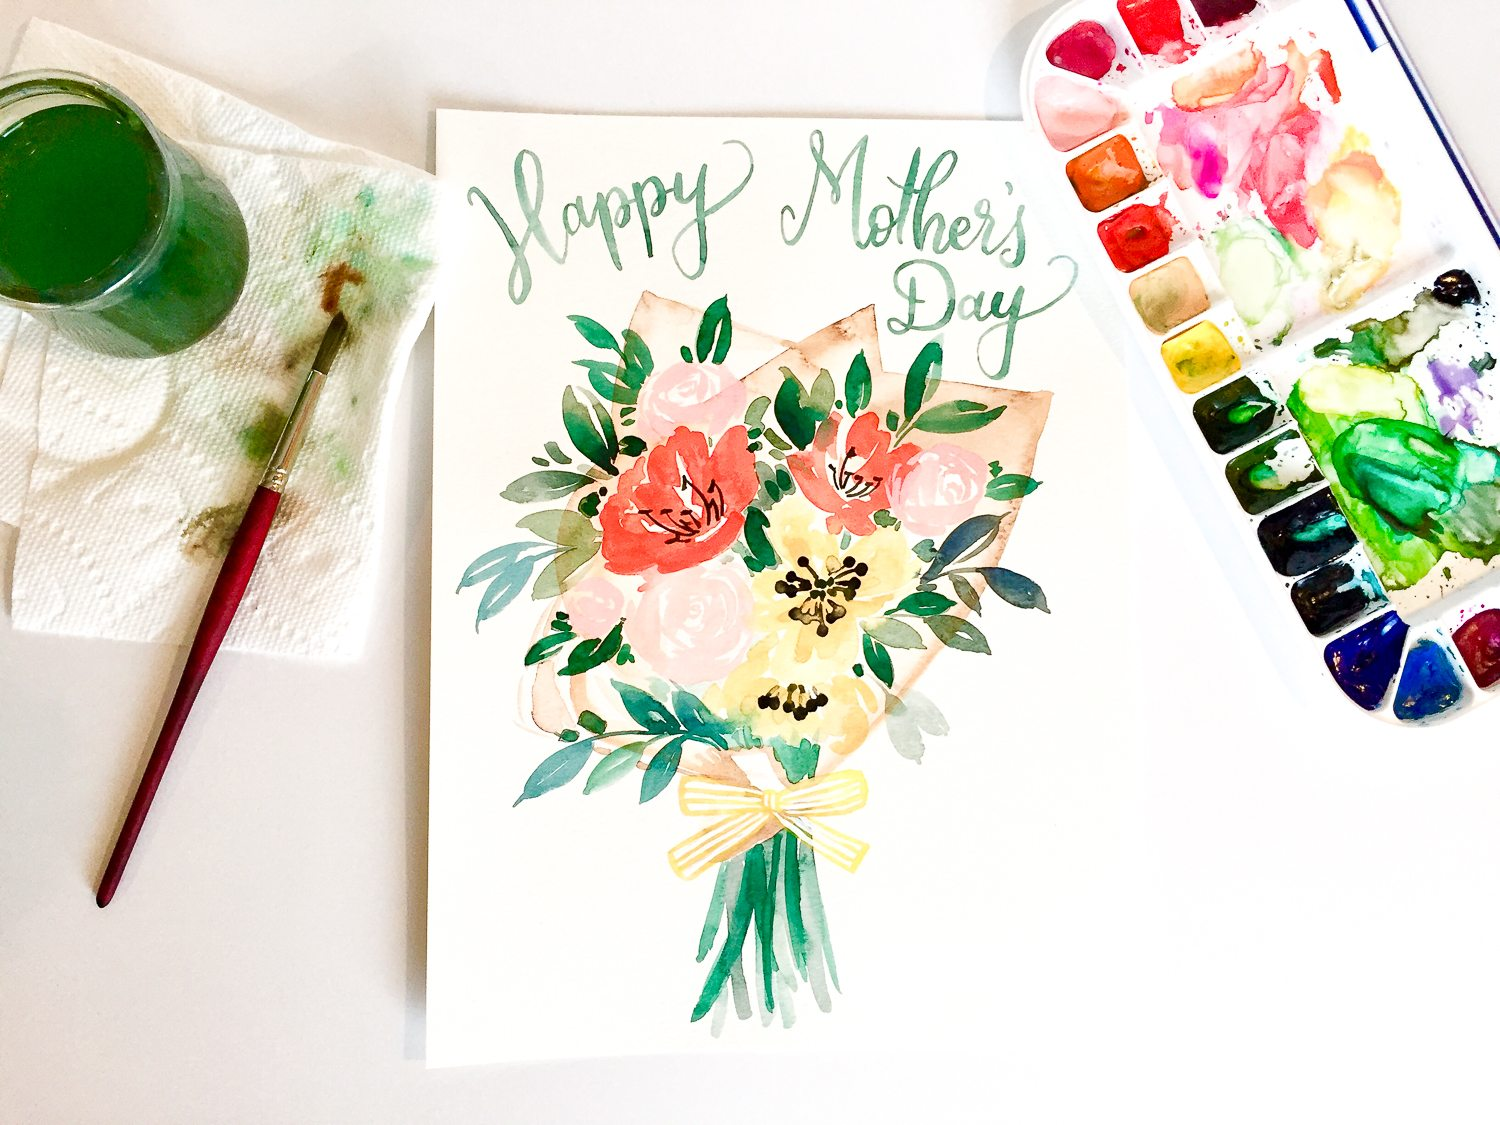 photo relating to Happy Mothers Day Printable Cards known as Satisfied Moms Working day Printable Card inside Floral Watercolor